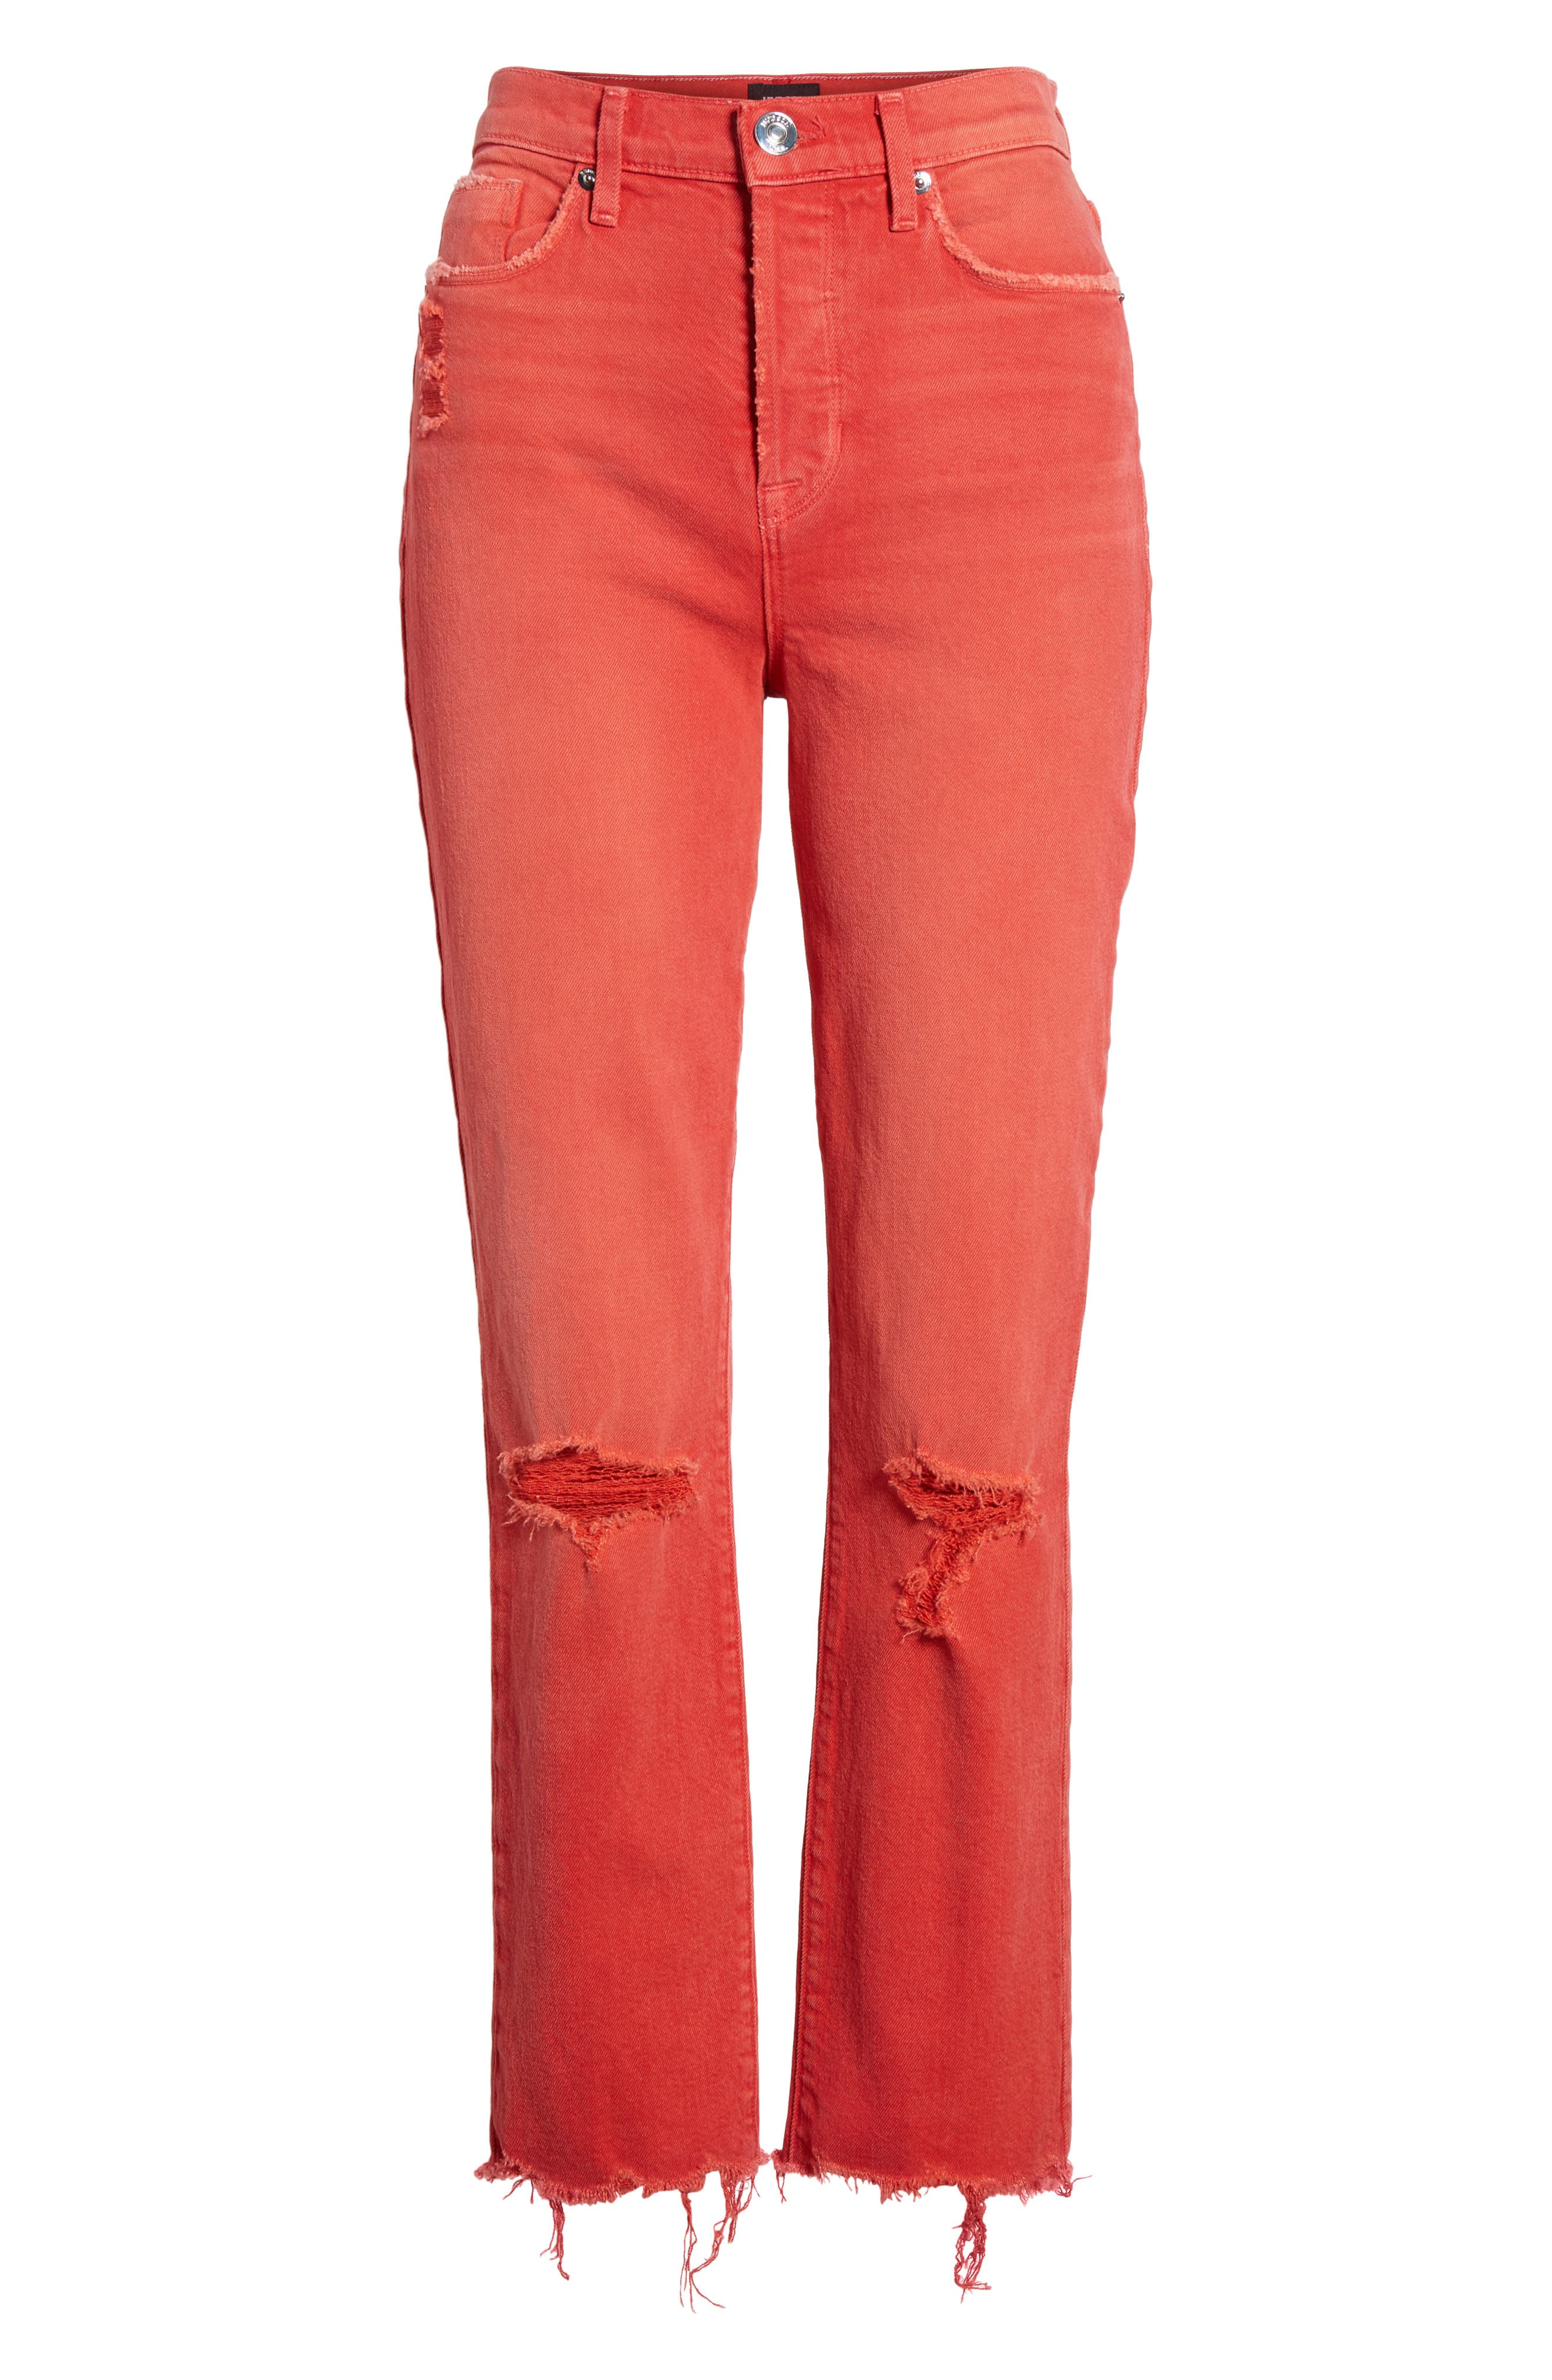 Zoeey Crop Straight Leg Jeans,                             Alternate thumbnail 7, color,                             640